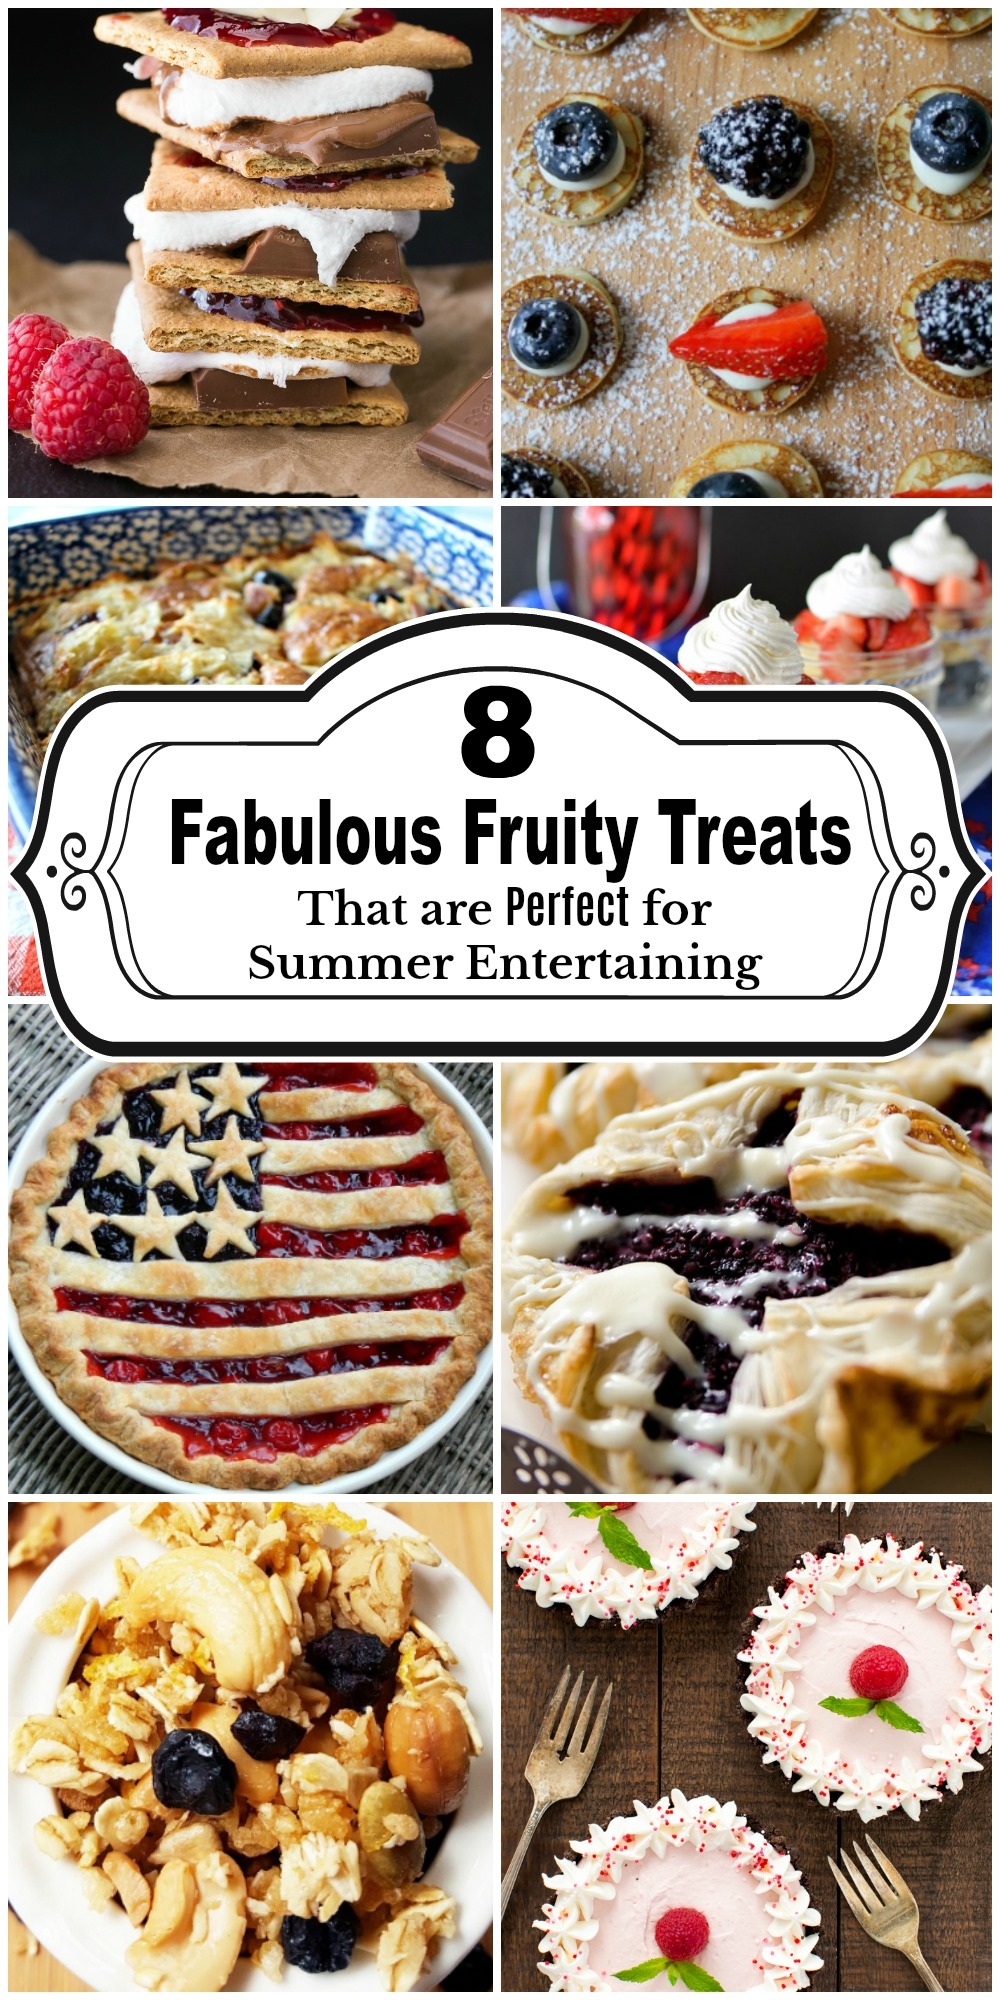 8 Fabulous Fruity Treats that are PERFECT for Summer Entertaining